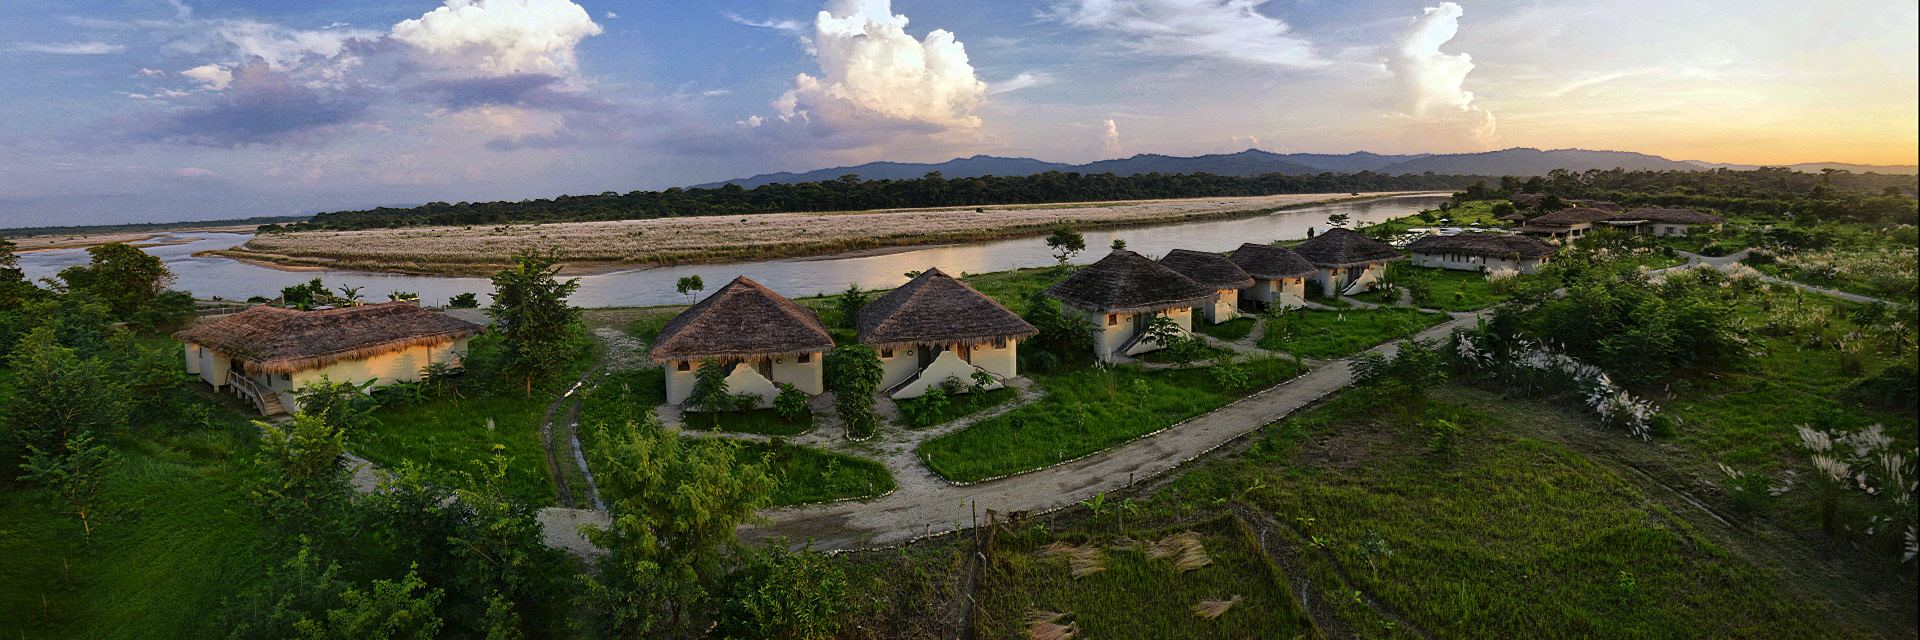 Barahi Lodge, Chitwan National Park